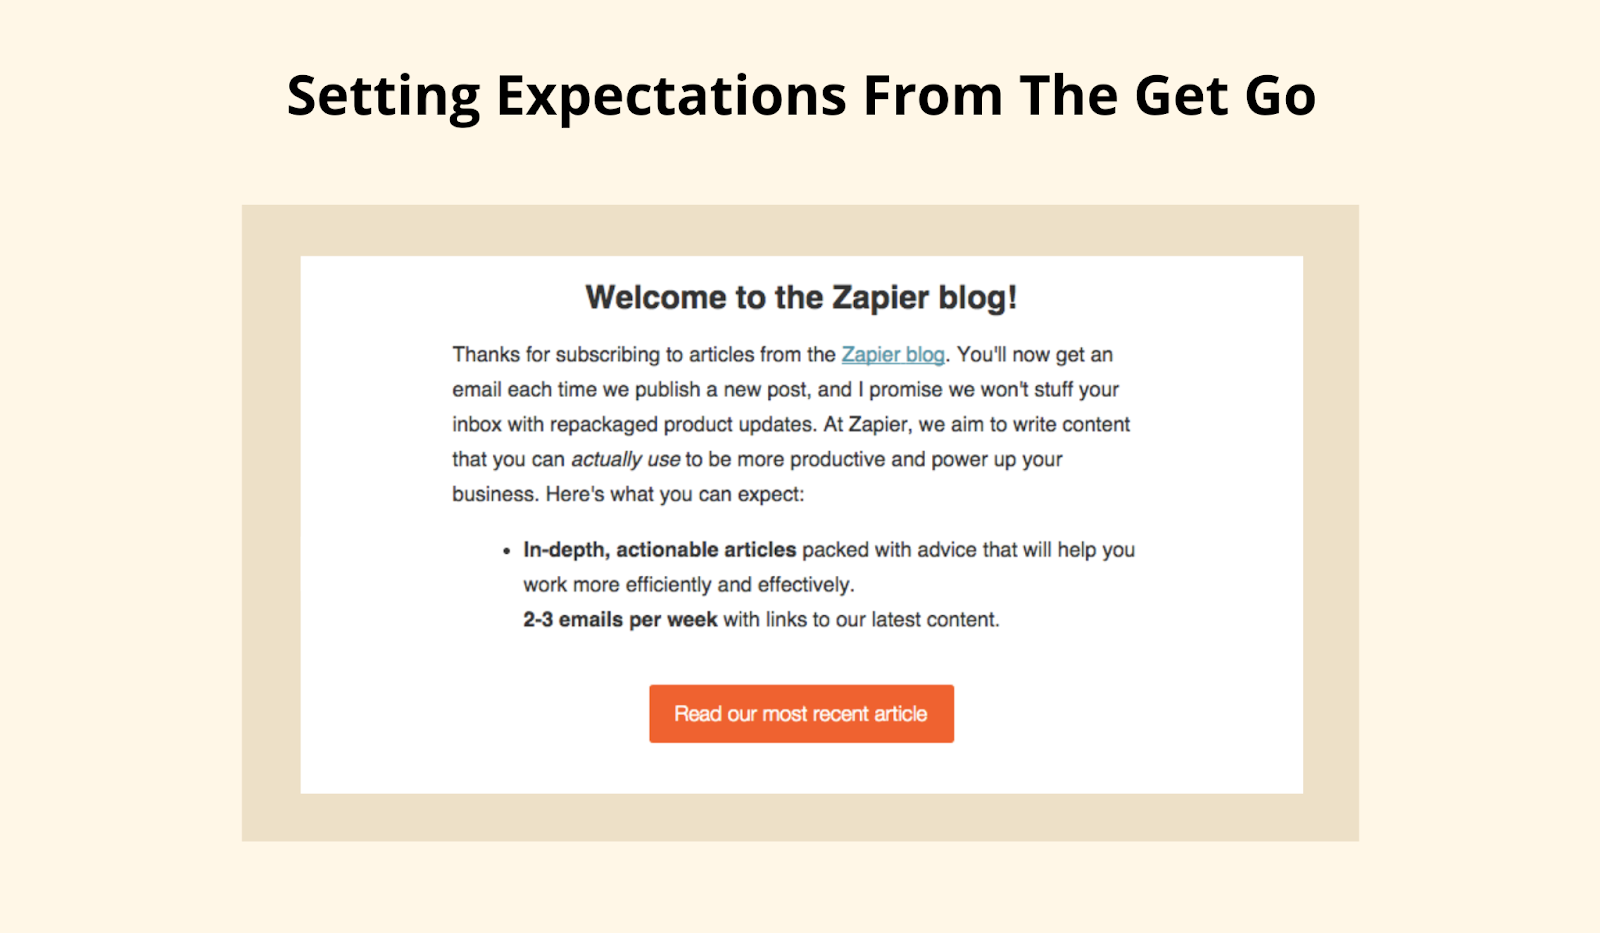 Example of Zapier setting expectations with their email subscribers from the start.